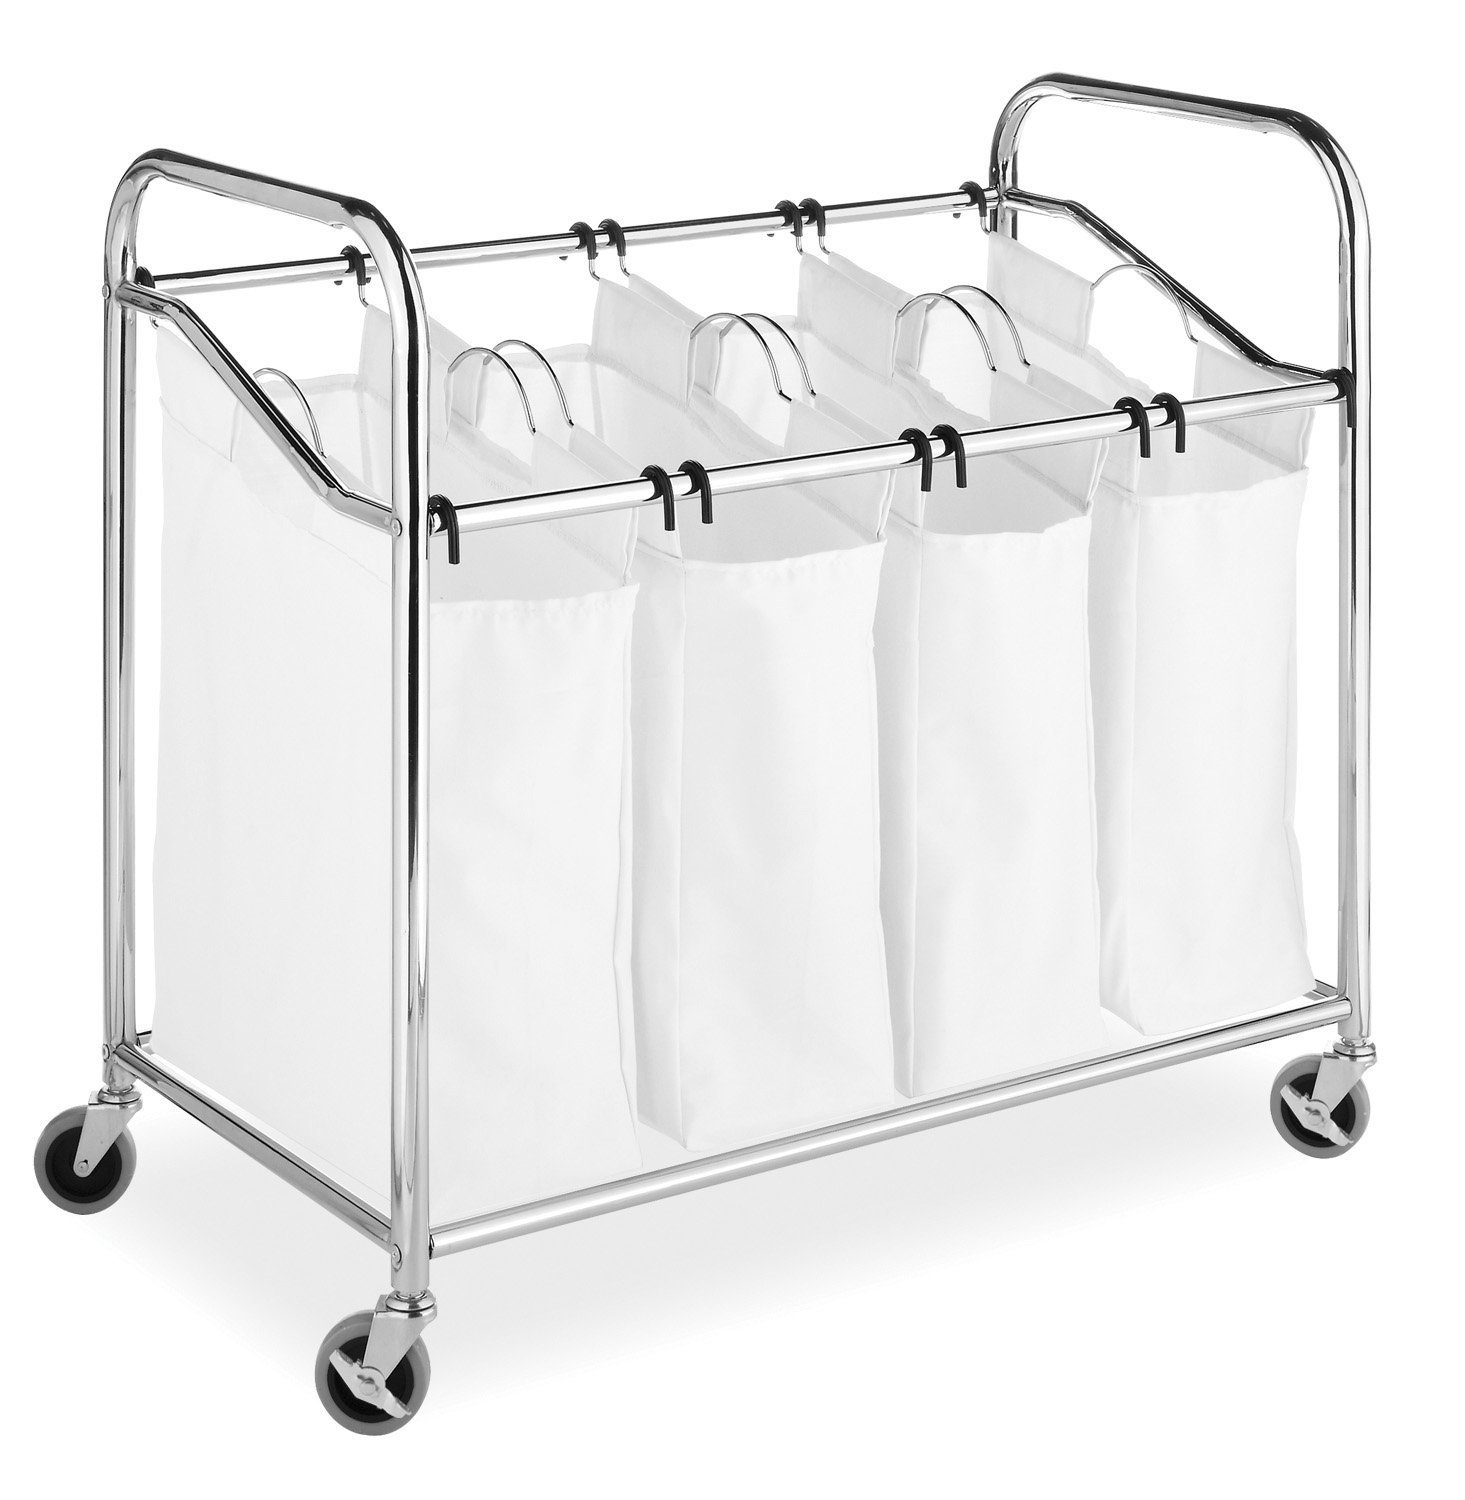 Whitmor 4 Section Laundry Sorter With Wheels Chrome U0026 White